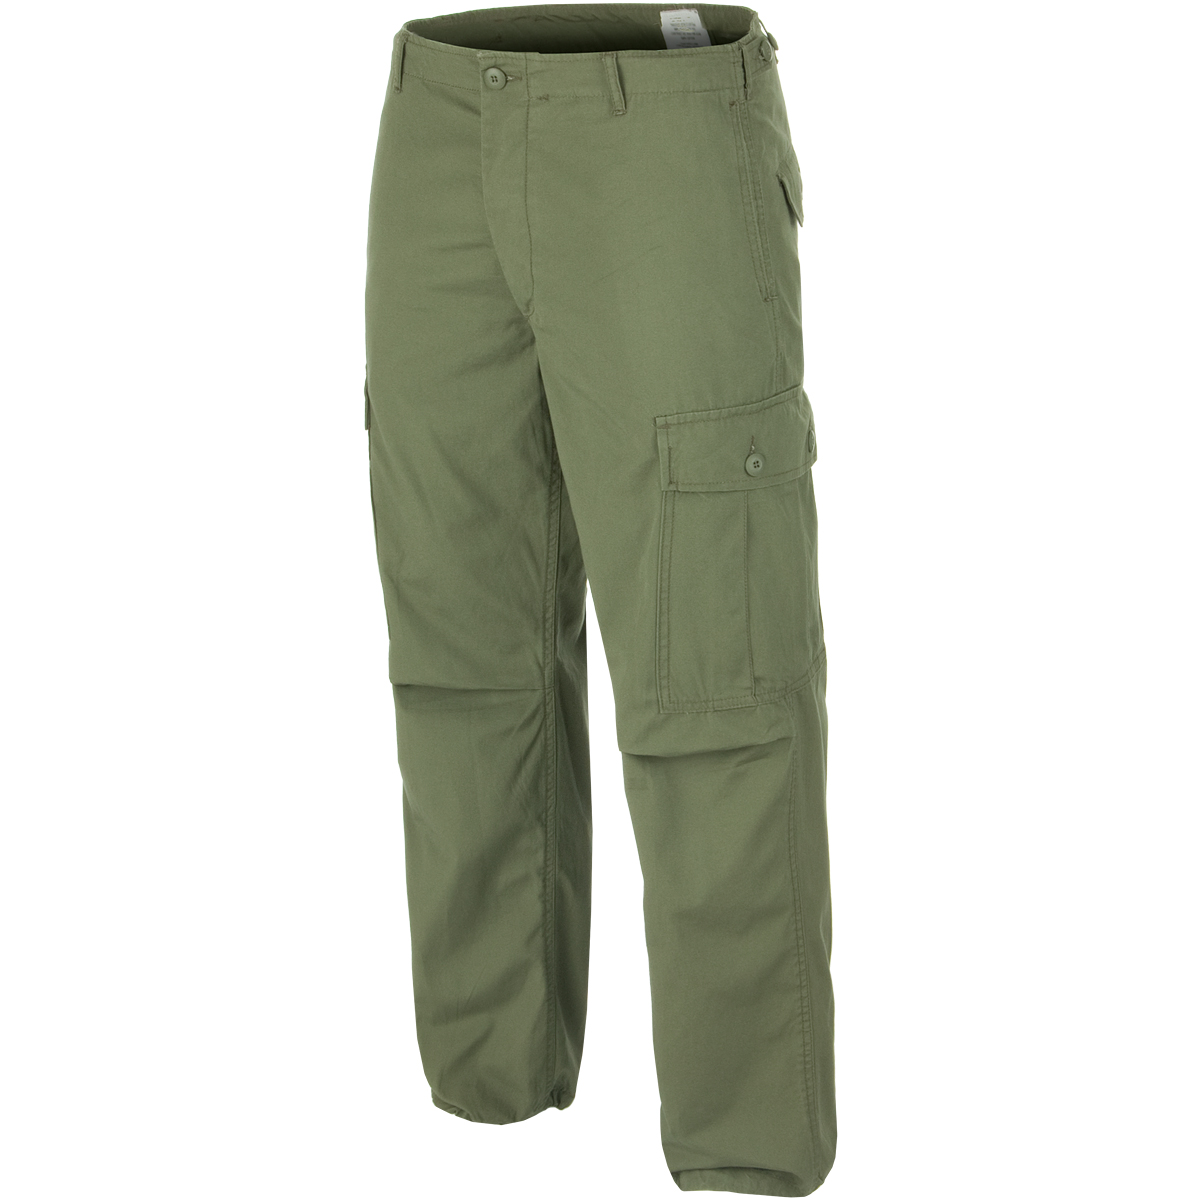 TEESAR-MENS-US-JUNGLE-COMBAT-TROUSERS-MILITARY-M64-